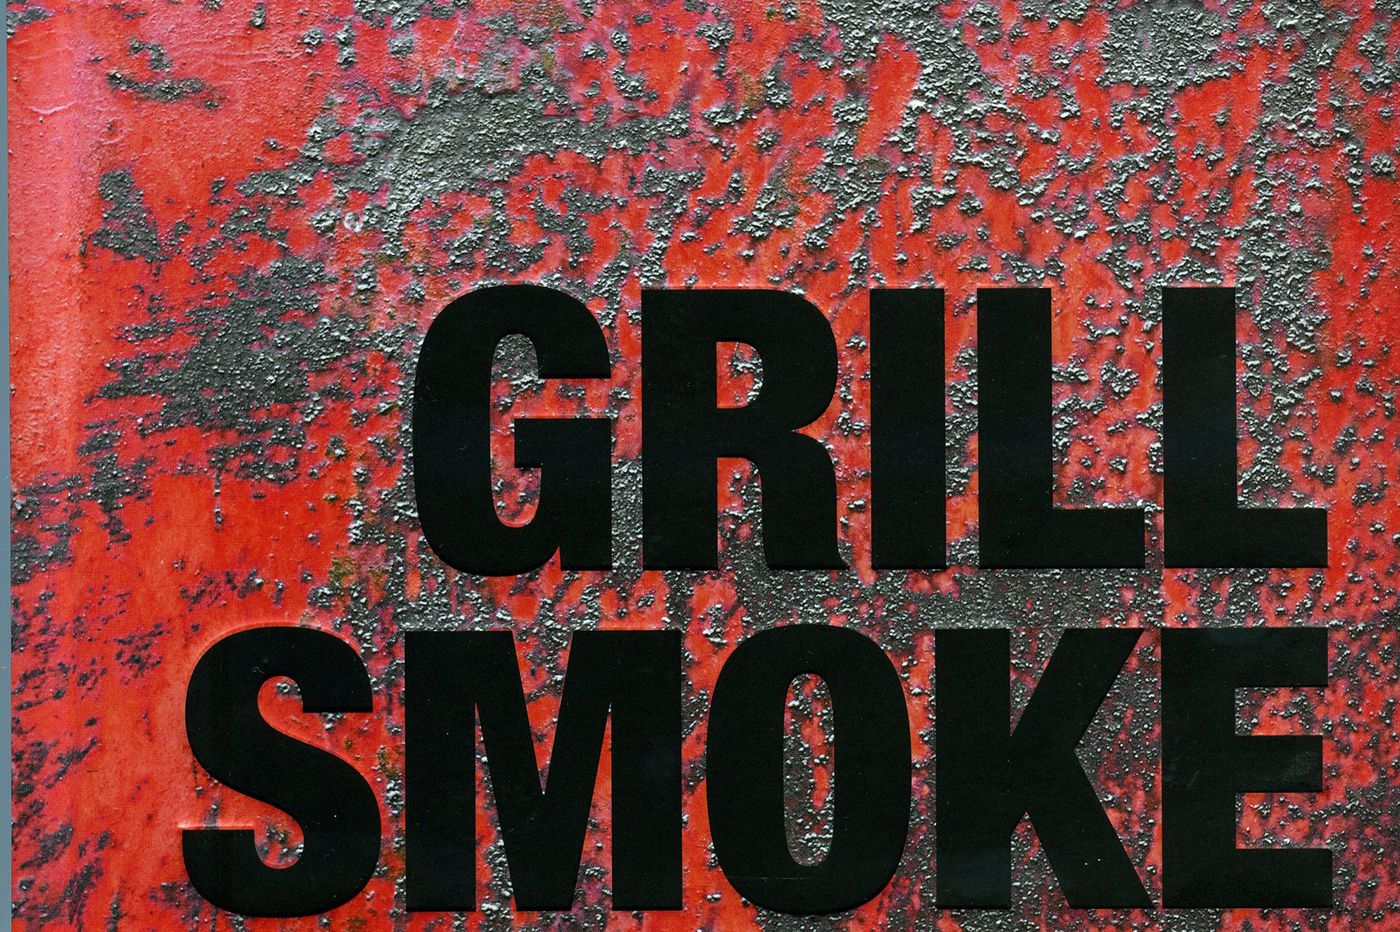 Cookbook review: 'Grill Smoke BBQ' by British chef Ben Tish